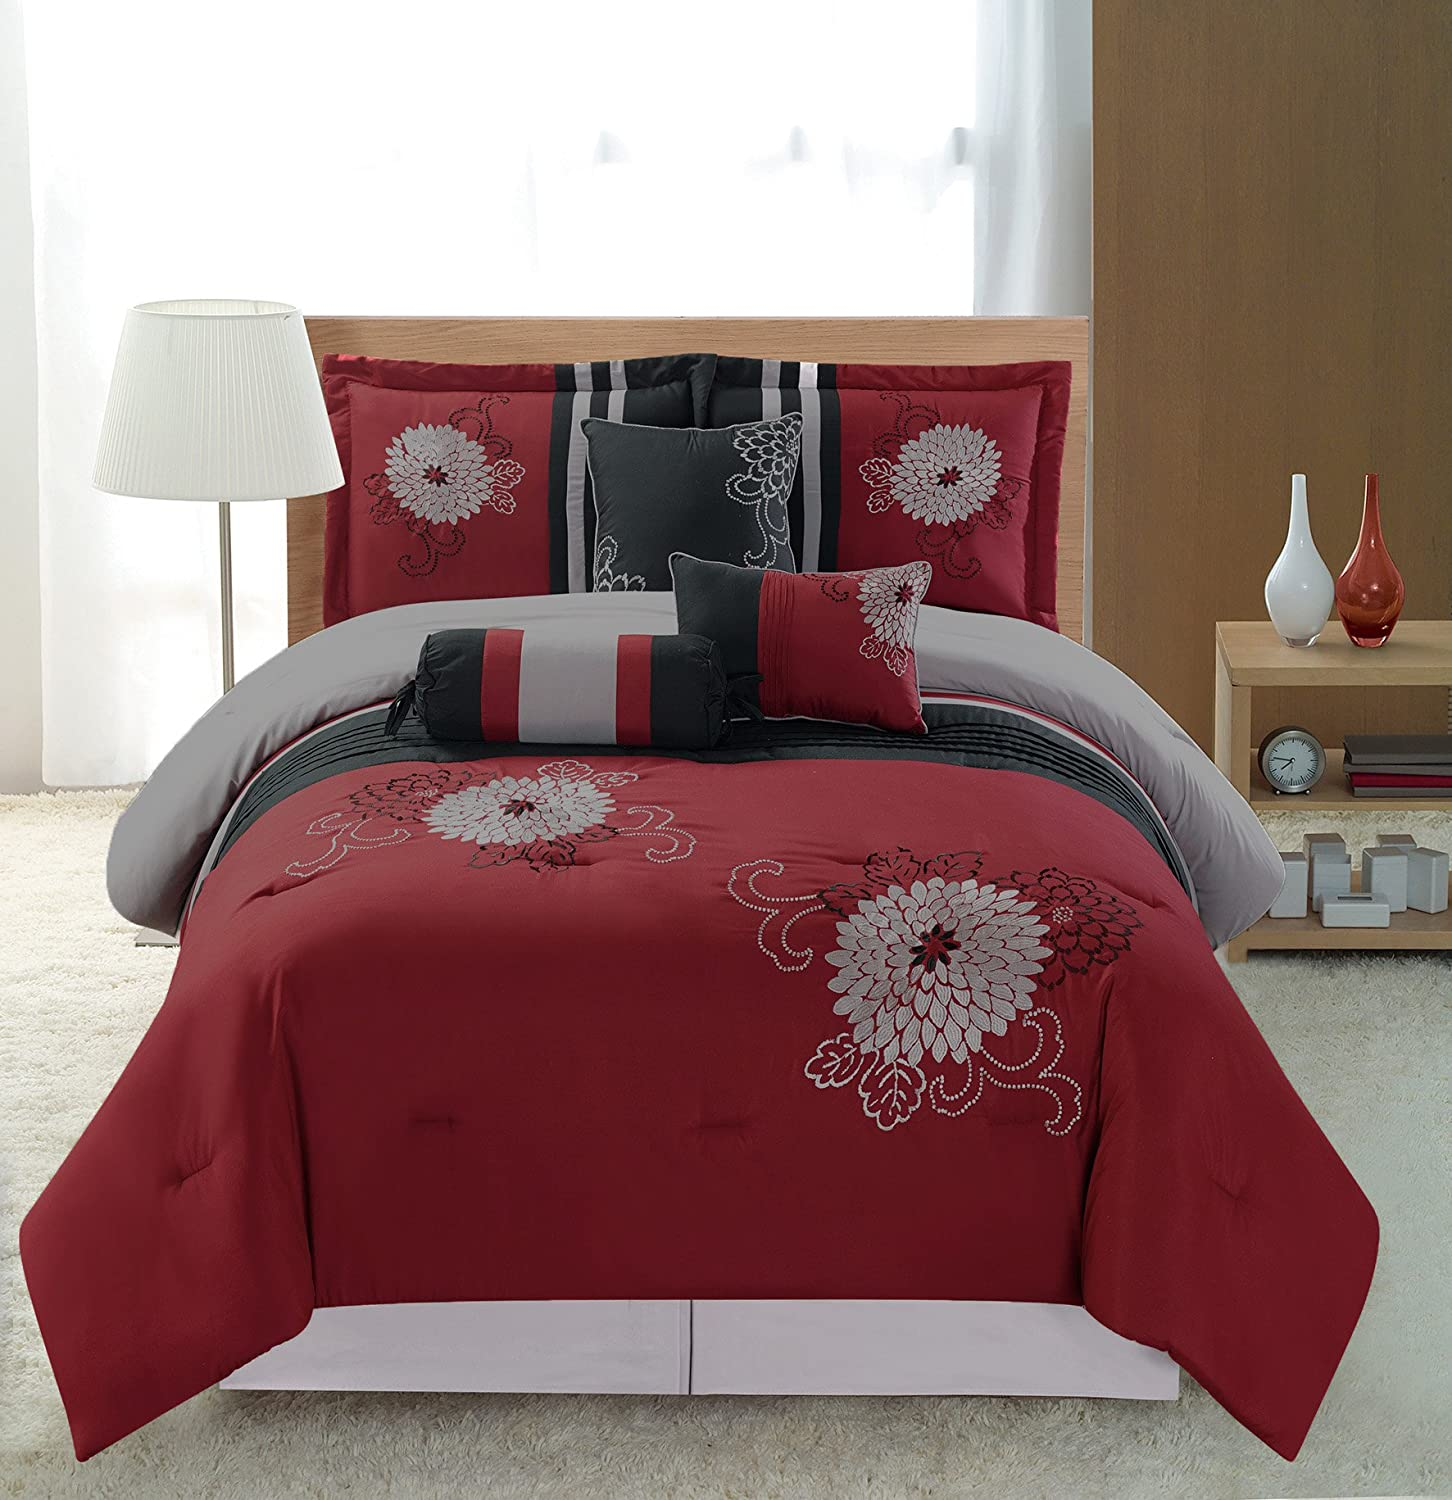 7-pc Embroidery Bedding Red Black Grey Comforter Set Shamz Red Queen